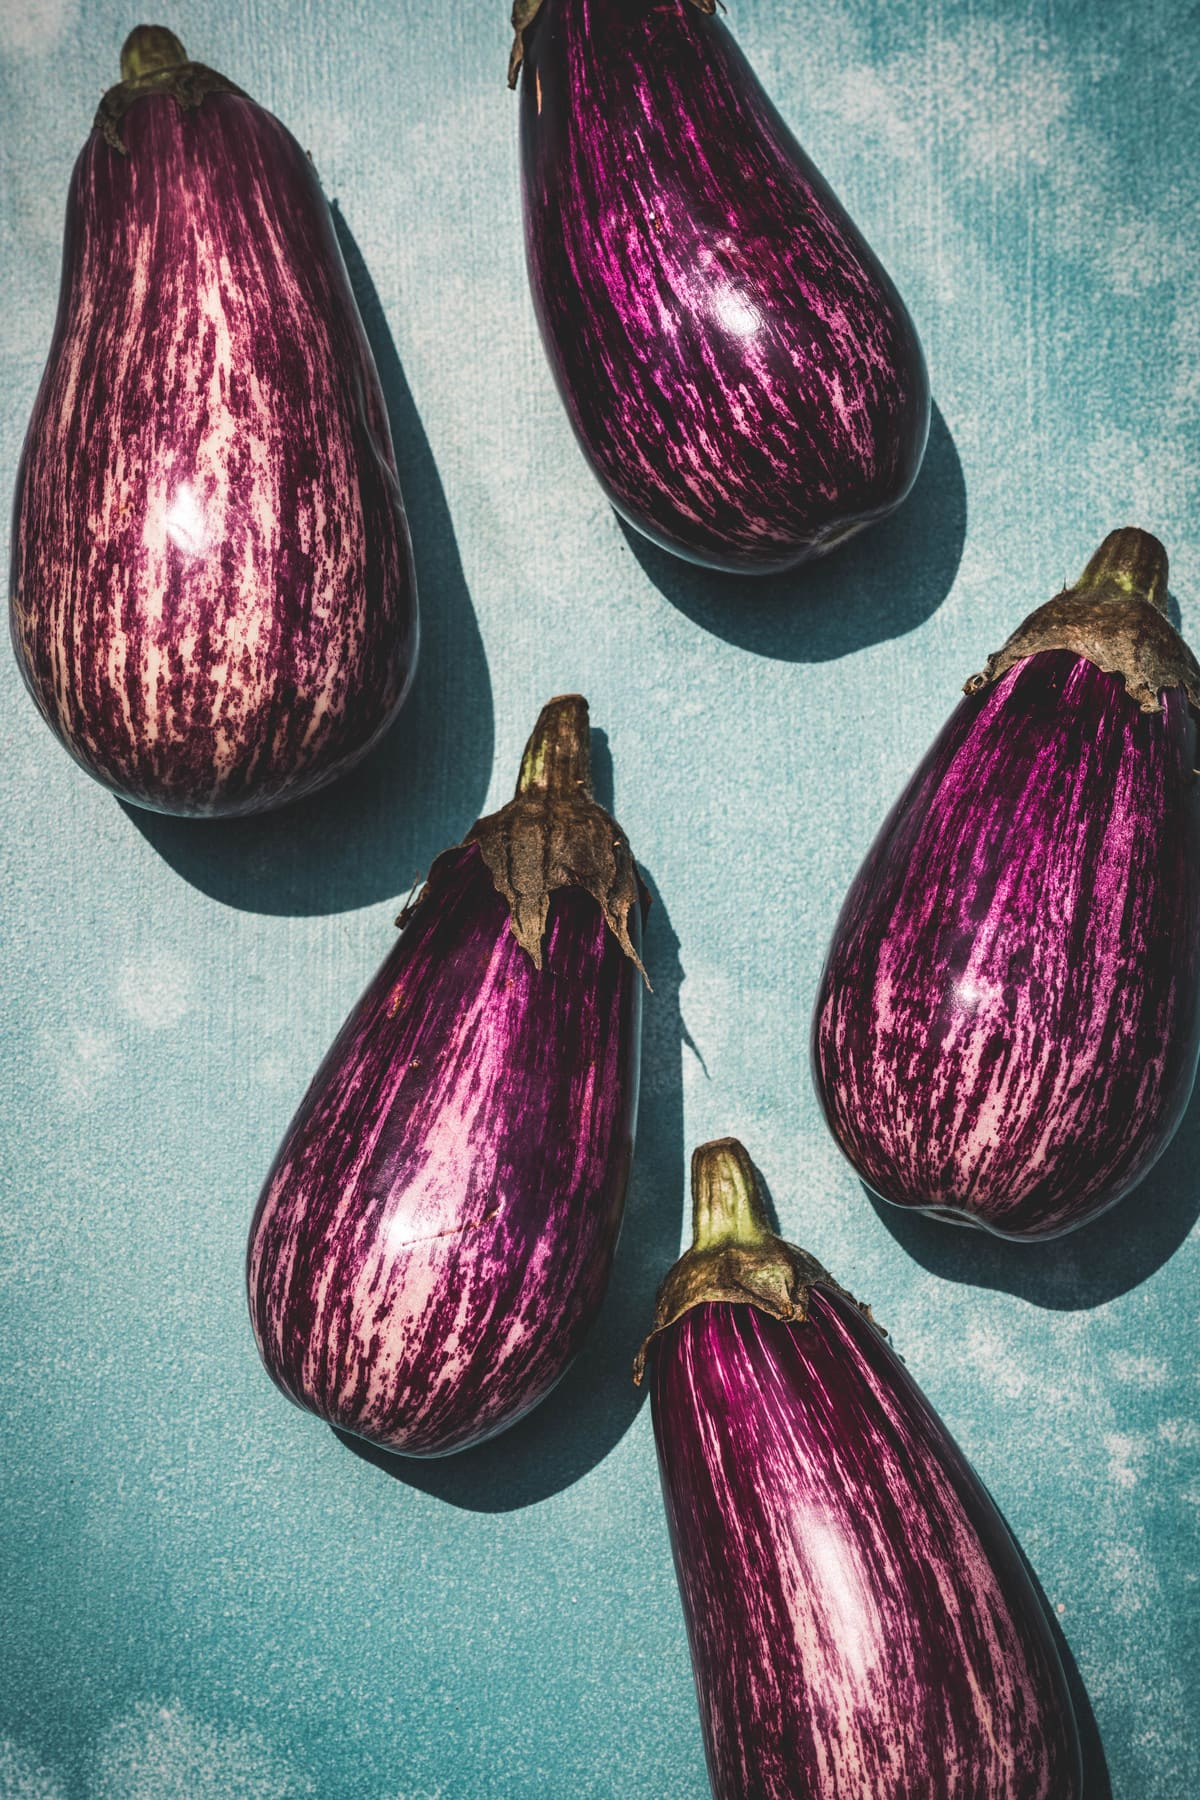 overhead of scicilian eggplants on a blue background